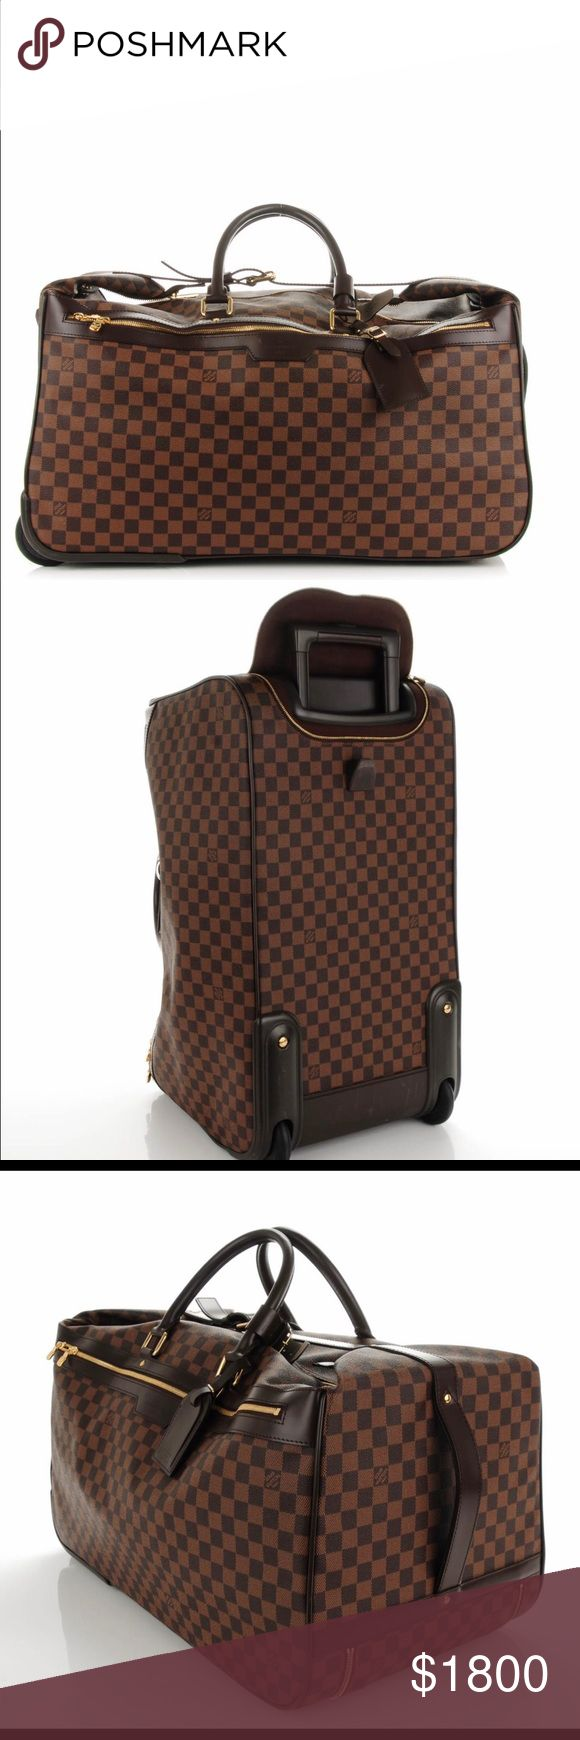 "LOUIS VUITTON Damier Ebene Eole 60 authentic LOUIS VUITTON Damier Ebene 60 signature damier classic check toile canvas. The bag features rolled top mocha leather handles with polished gold links, leather trim for structure, top of the line internal retractable handle mechanism, frame with rear wheel and two opposite flaps that close together with a belt and buckle.    Length: 23"", Height: 12"", Depth: 12"", Drop: 6"" Louis Vuitton Bags Travel Bags"